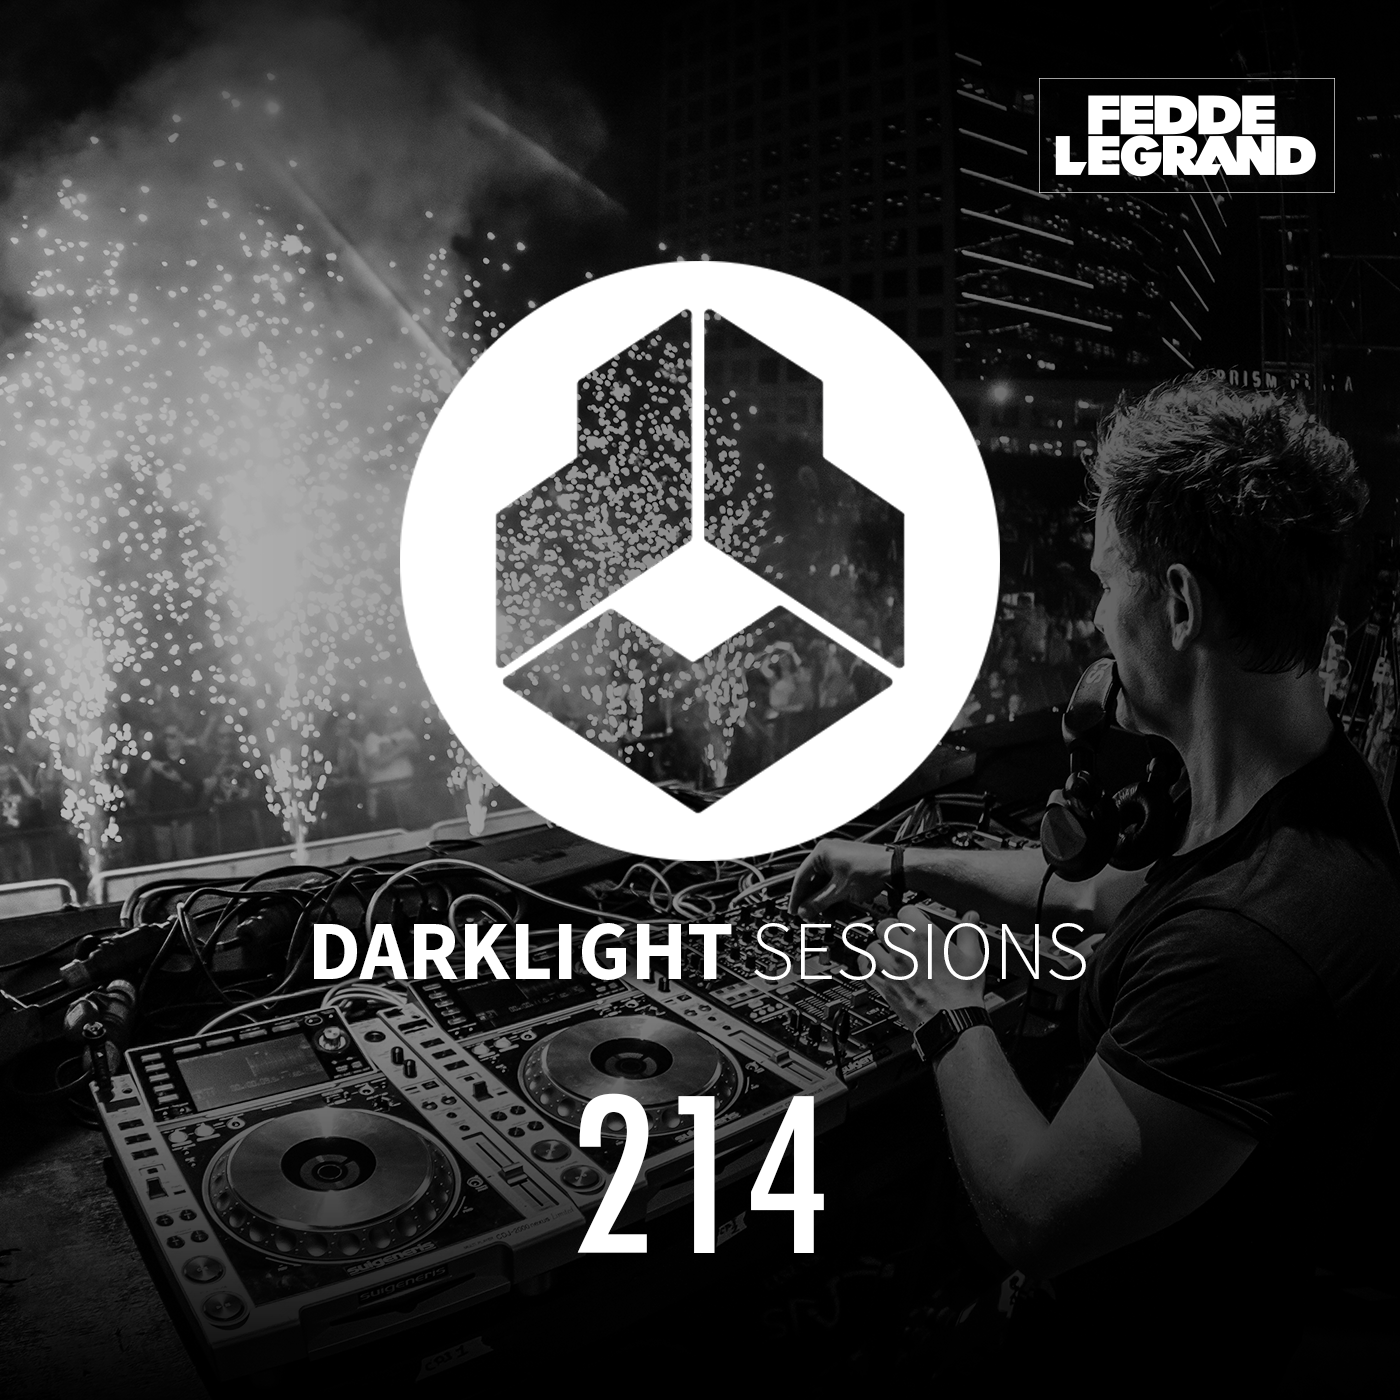 Darklight Sessions 214